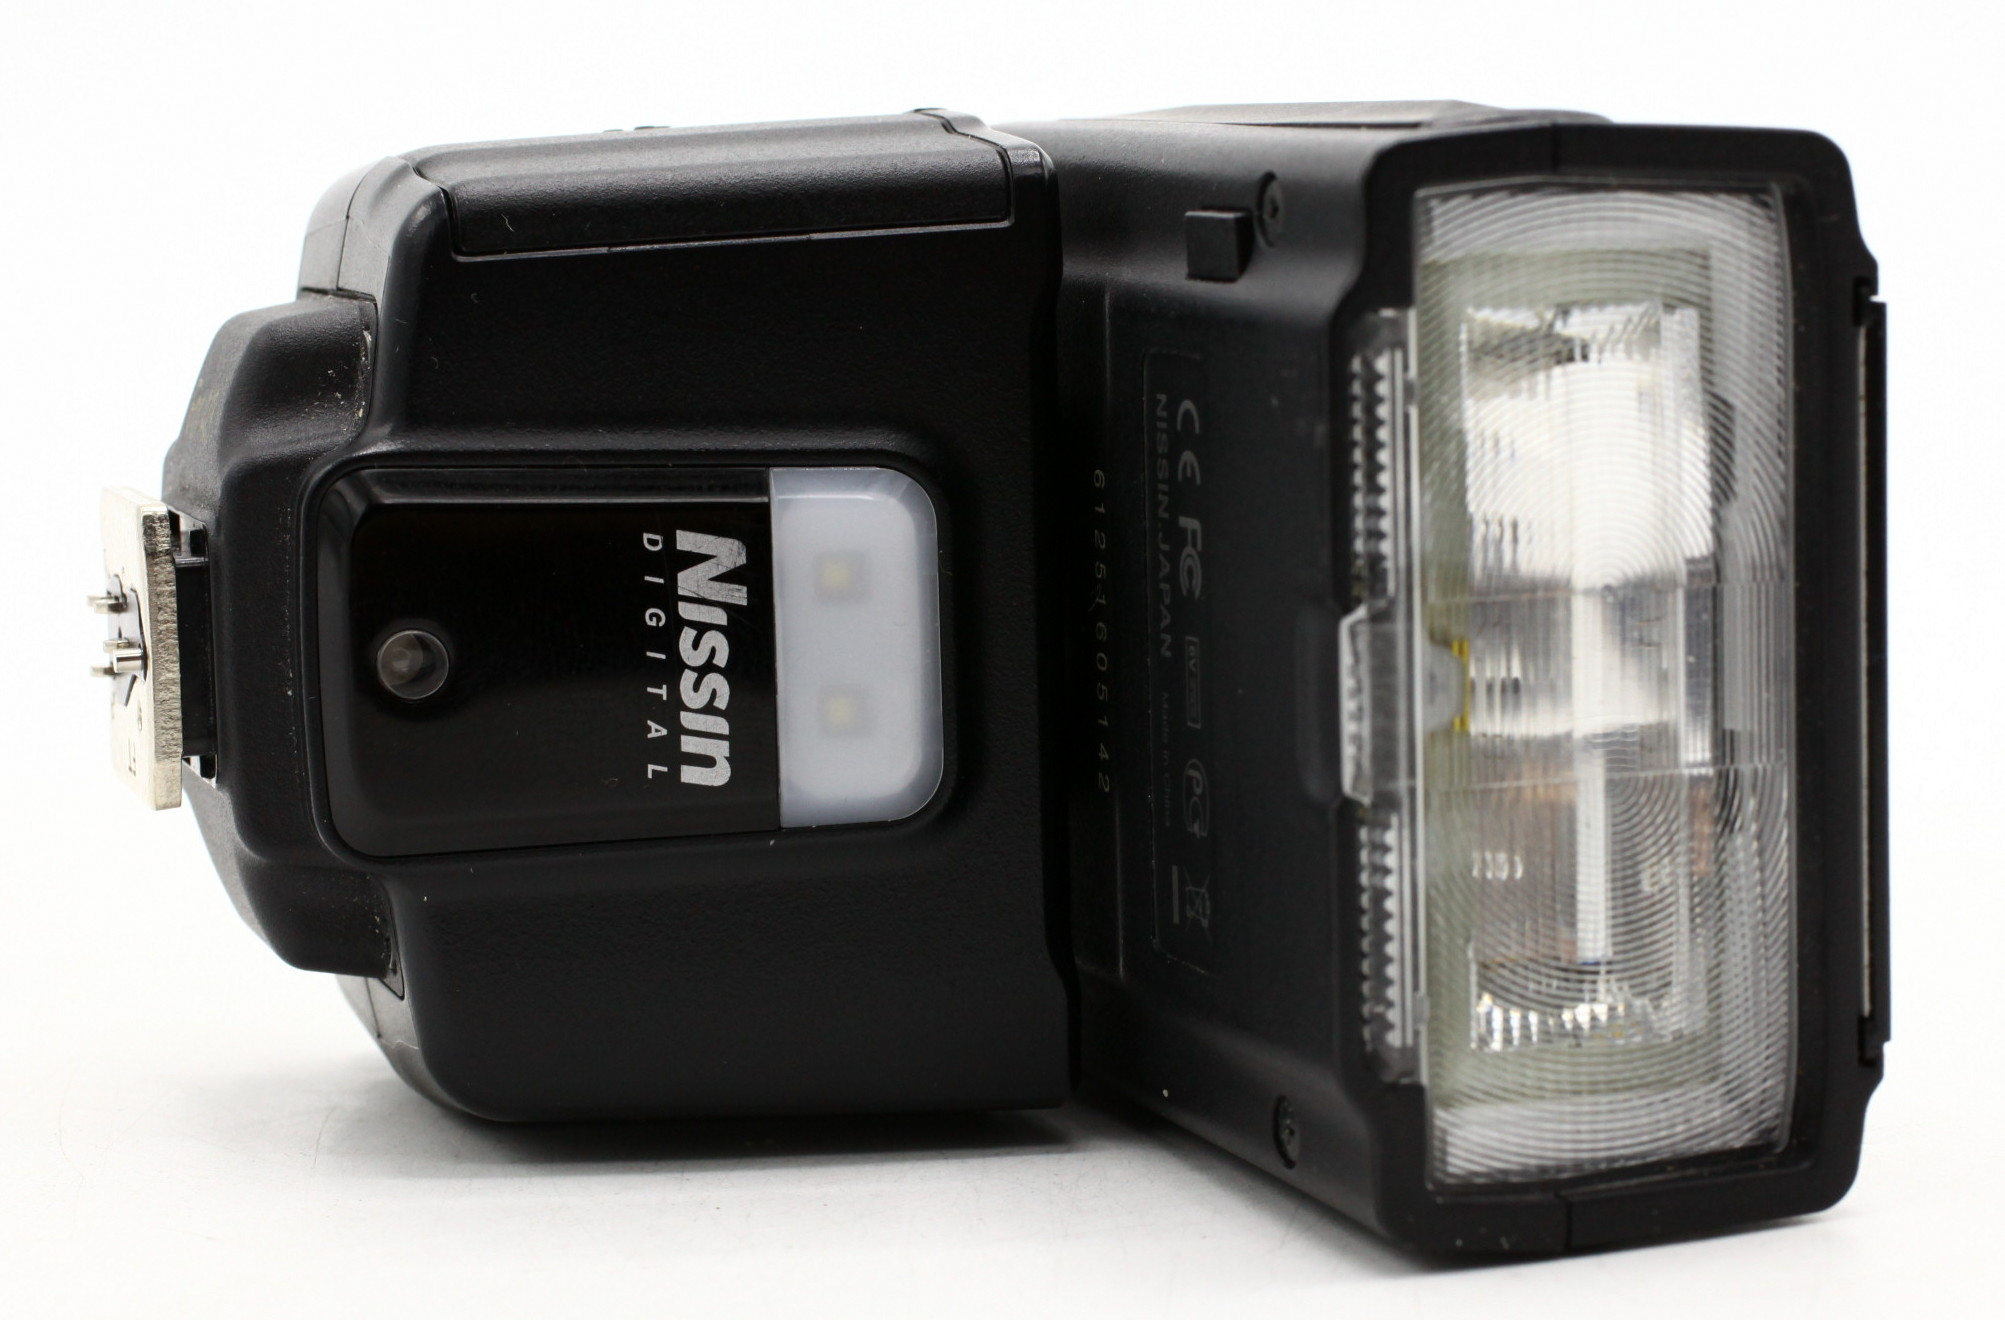 Nissin i40 flitser Micro Four Thirds occasion